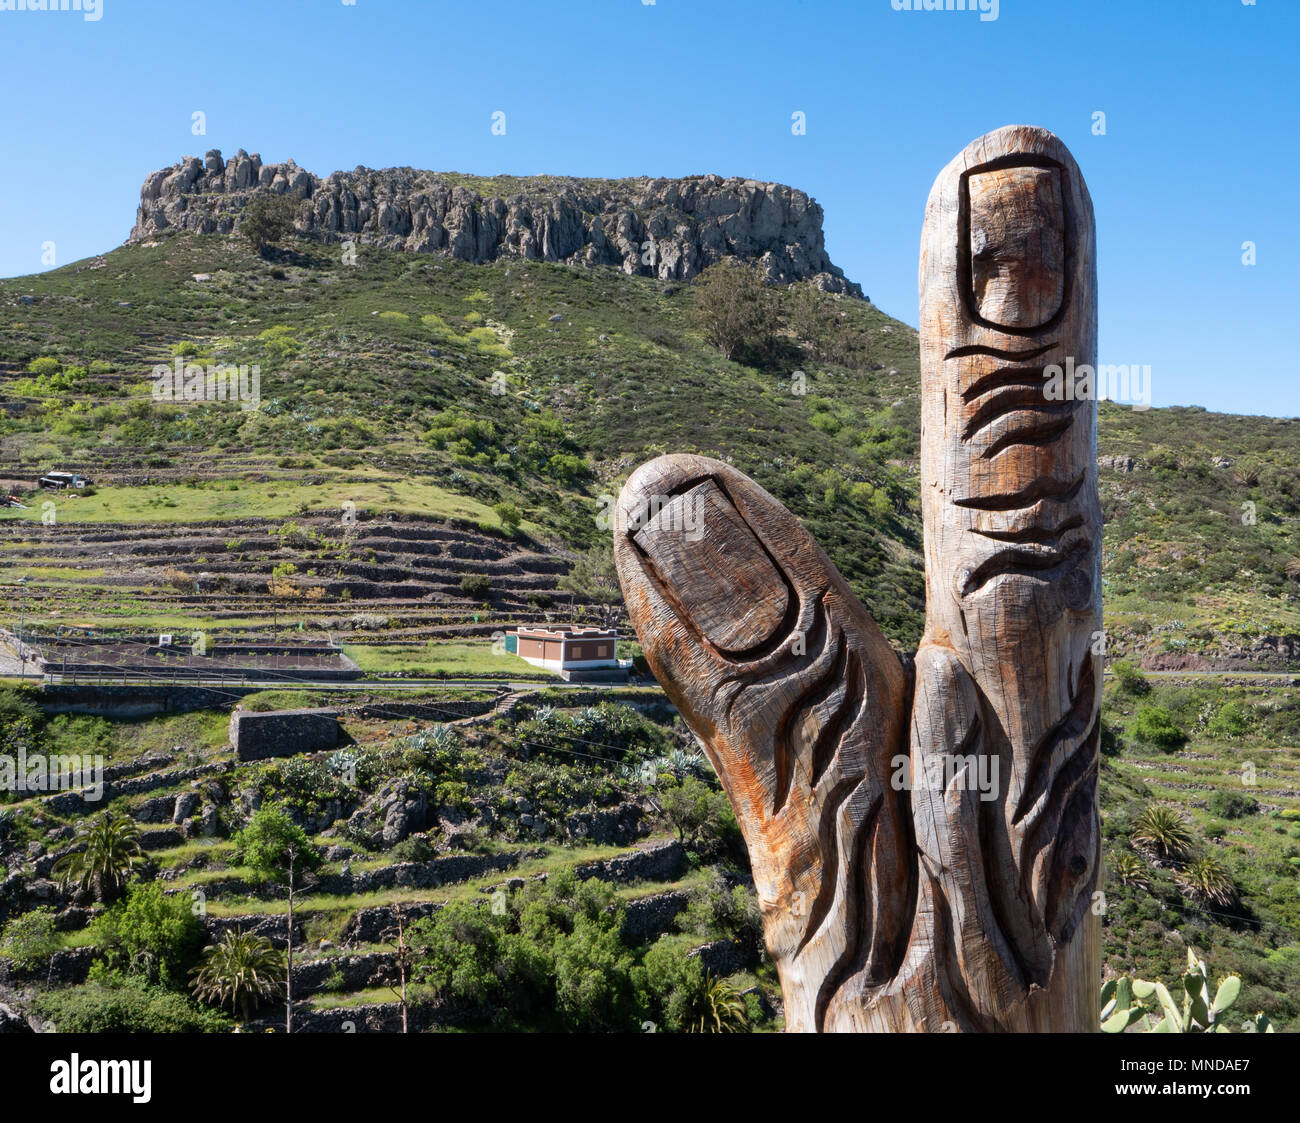 Wooden finger sculpture with the Fortaleza de Chipude a volcanic plug and natural fortress overlooking the western coast of La Gomera Canary Islands - Stock Image